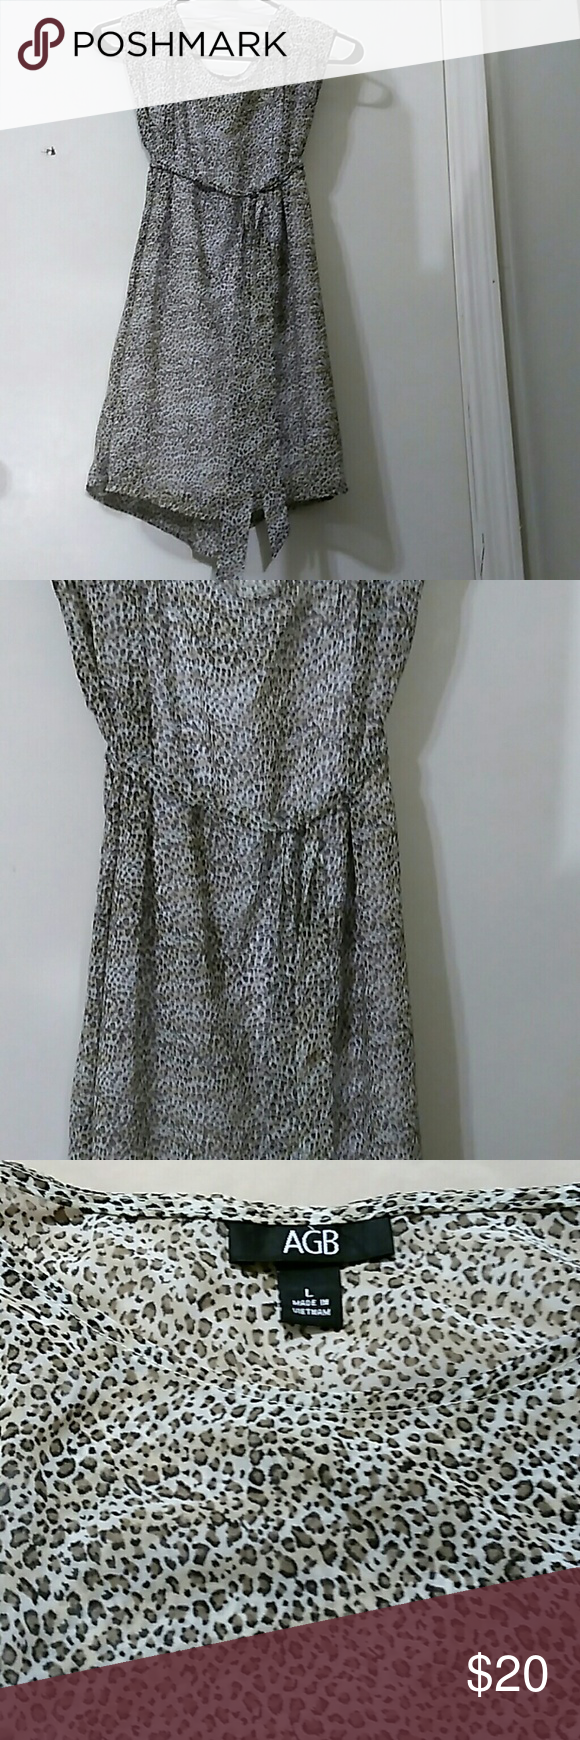 Leopard Chiffon top NWOT Leopard Chiffon top.. comes with a leopard belt or u can wear it flowy AGB Tops Blouses